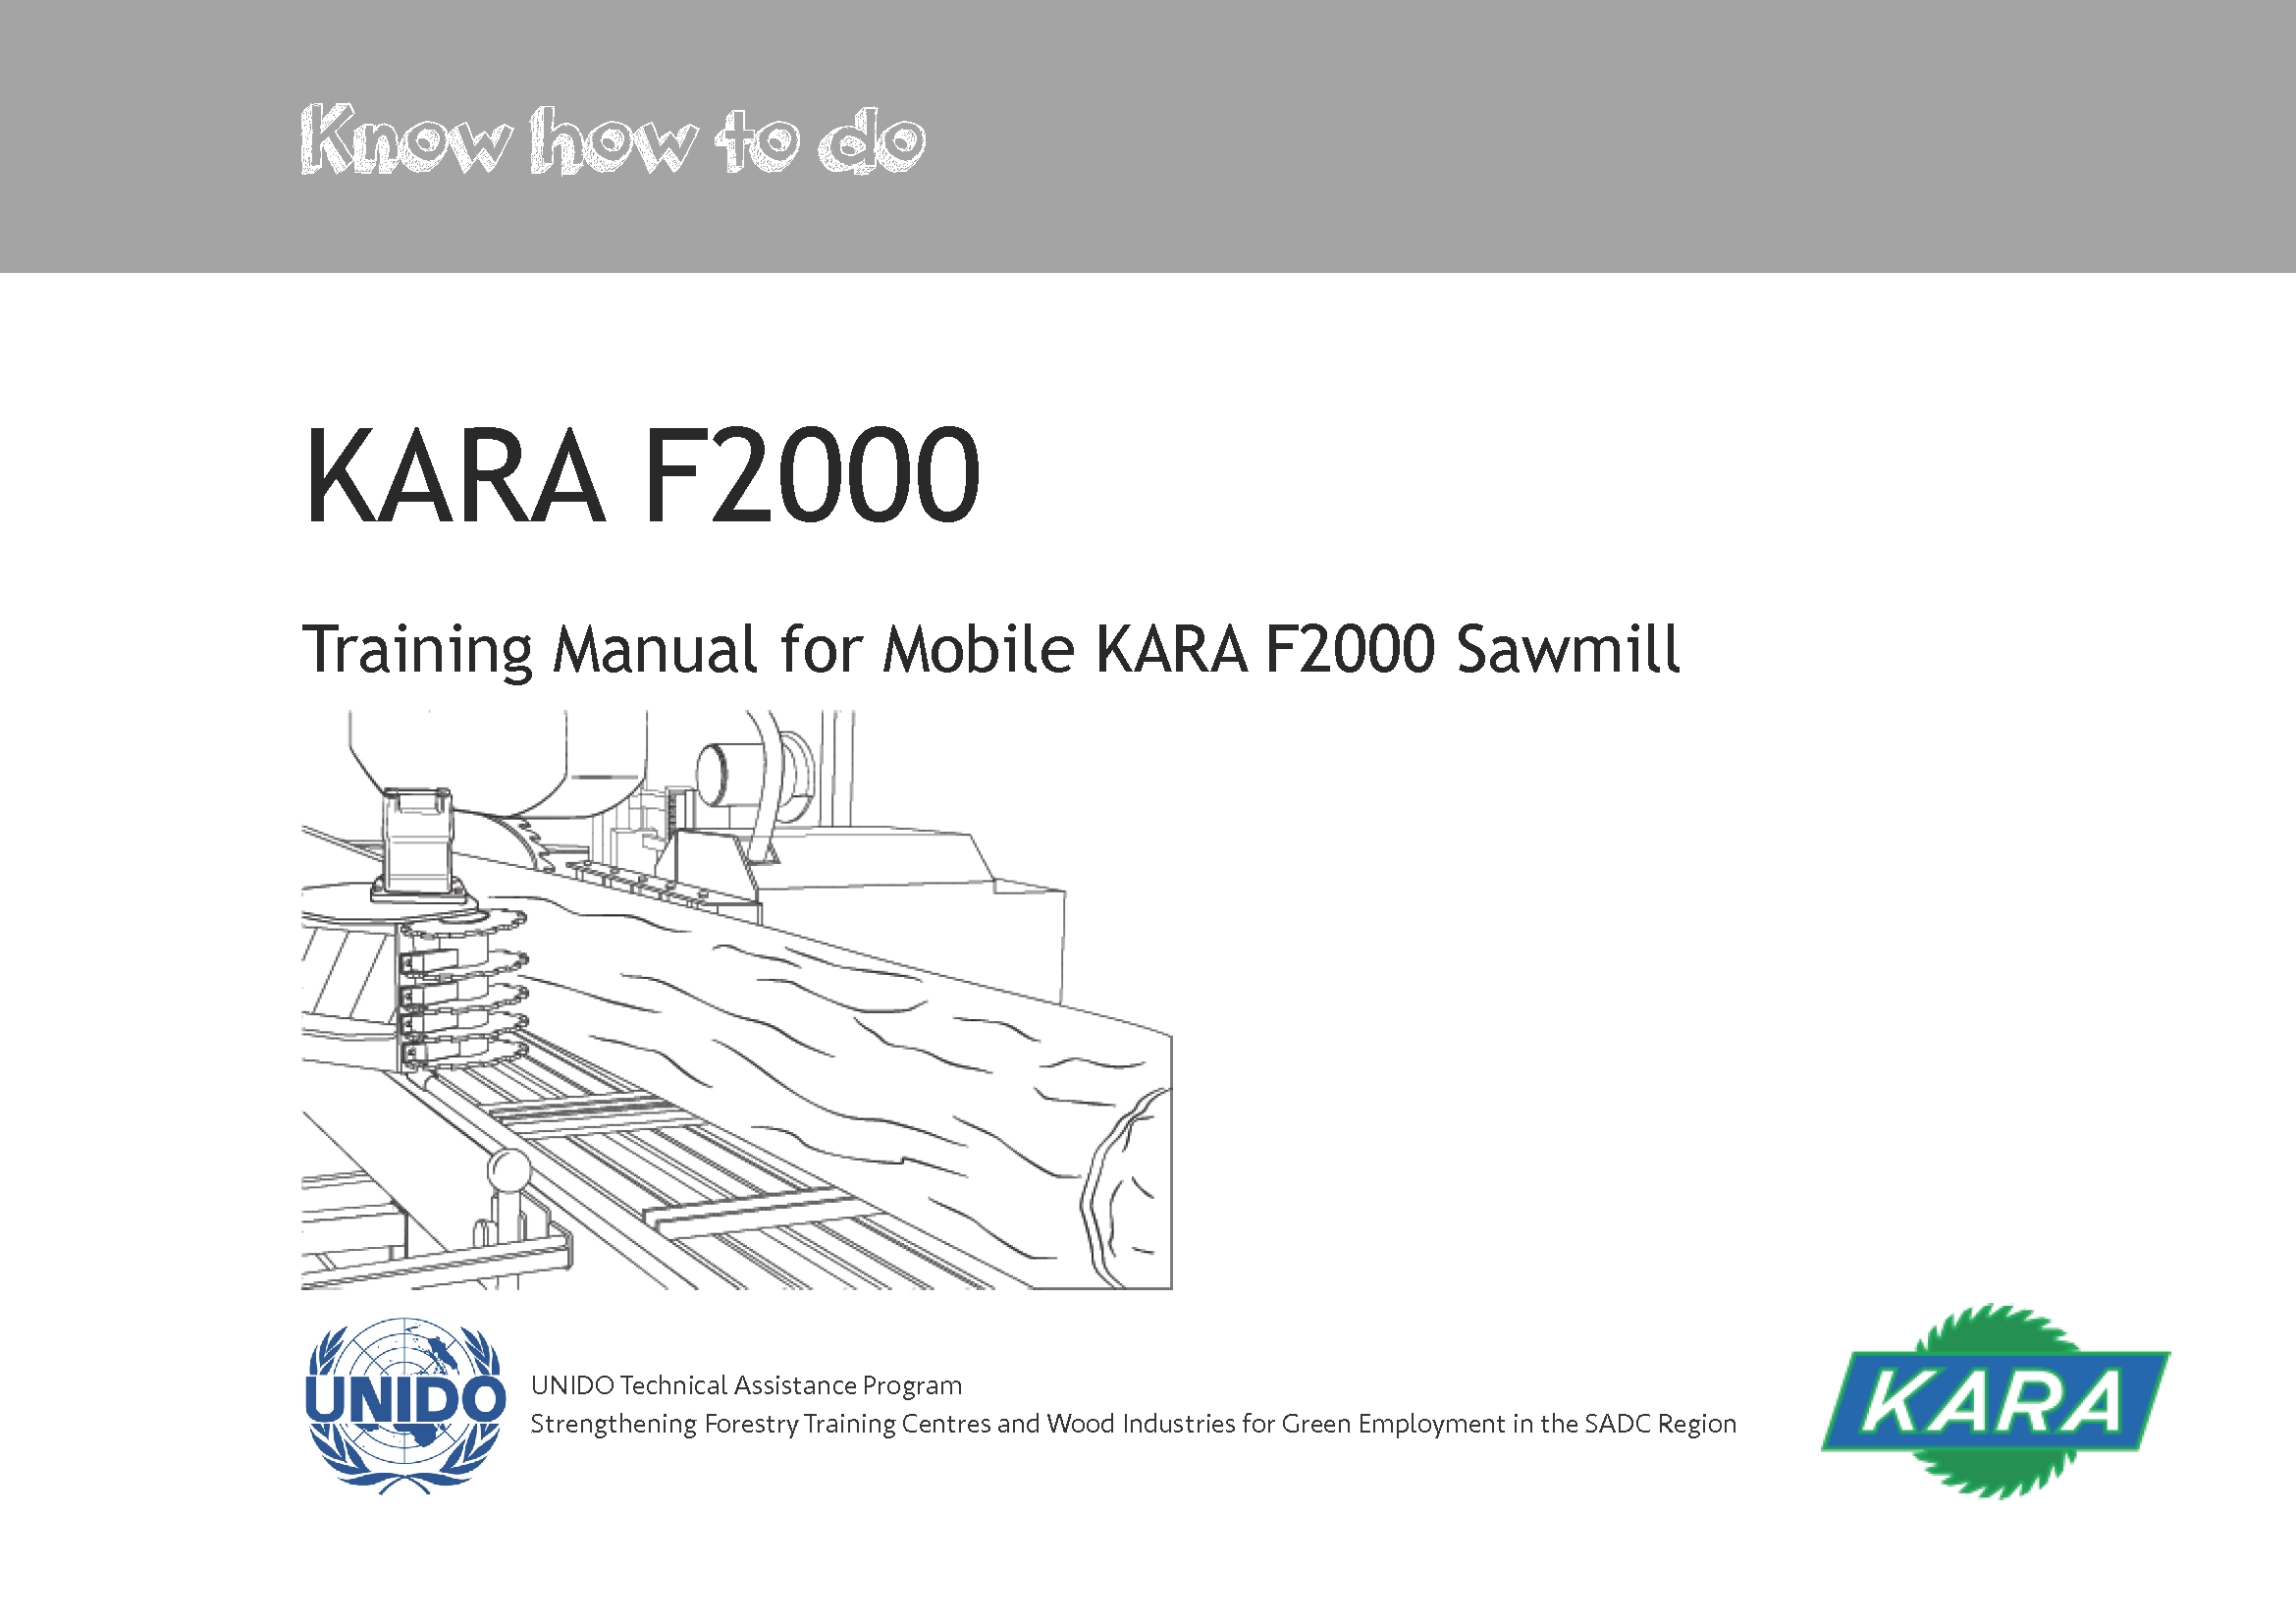 Wood Processing Training Manual for Mobile KARA F2000 Sawmill – Training Manual Cover Page